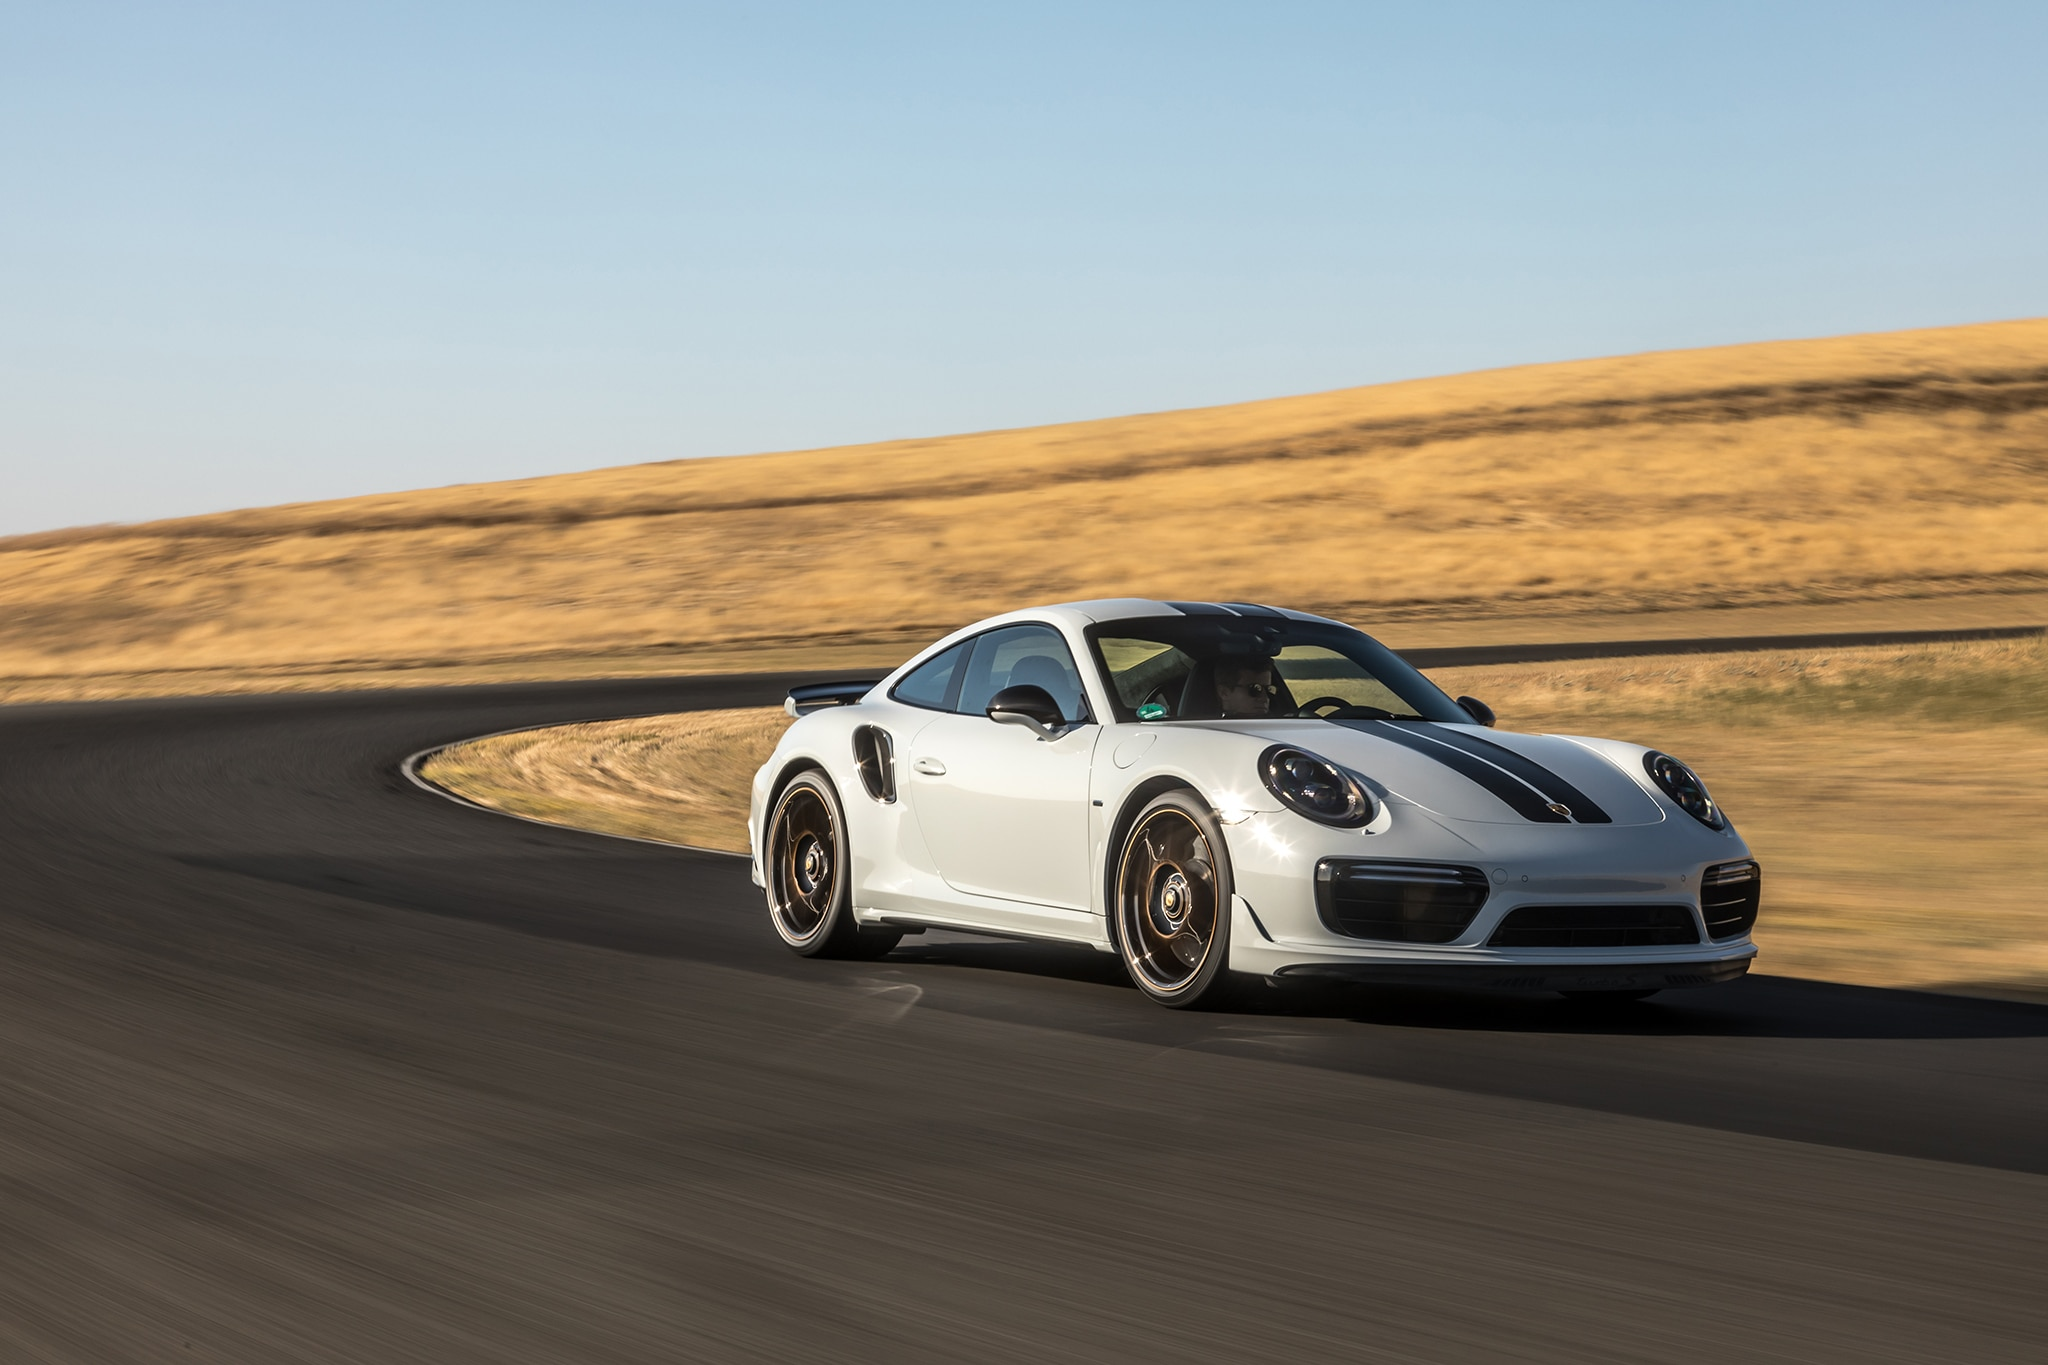 2018 Porsche 911 Turbo S Exclusive Front Three Quarter In Motion 04